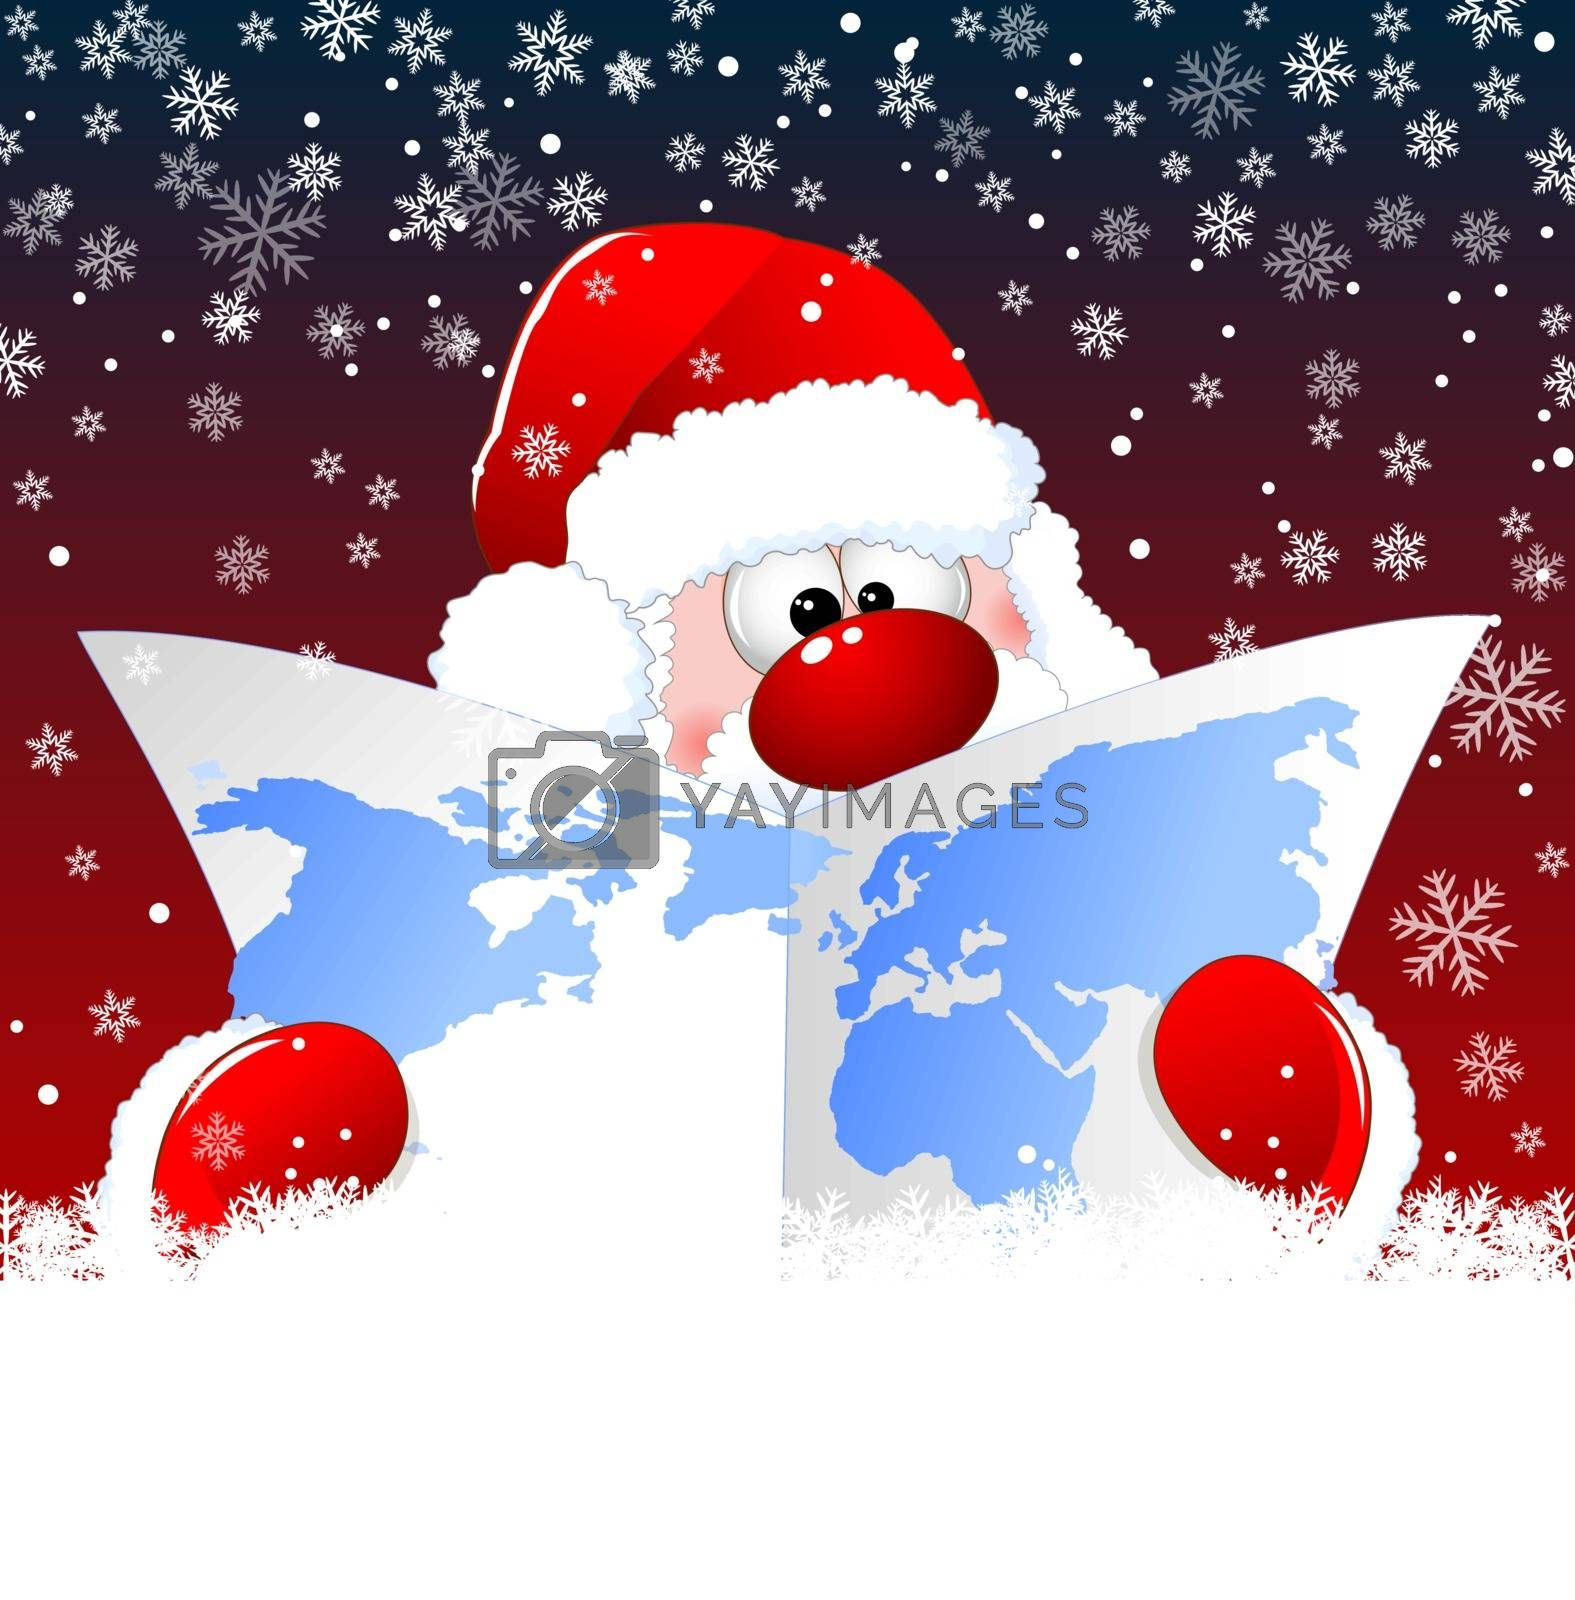 Santa Claus looks at a world map on a background of snowflakes. Santa is holding a world map.